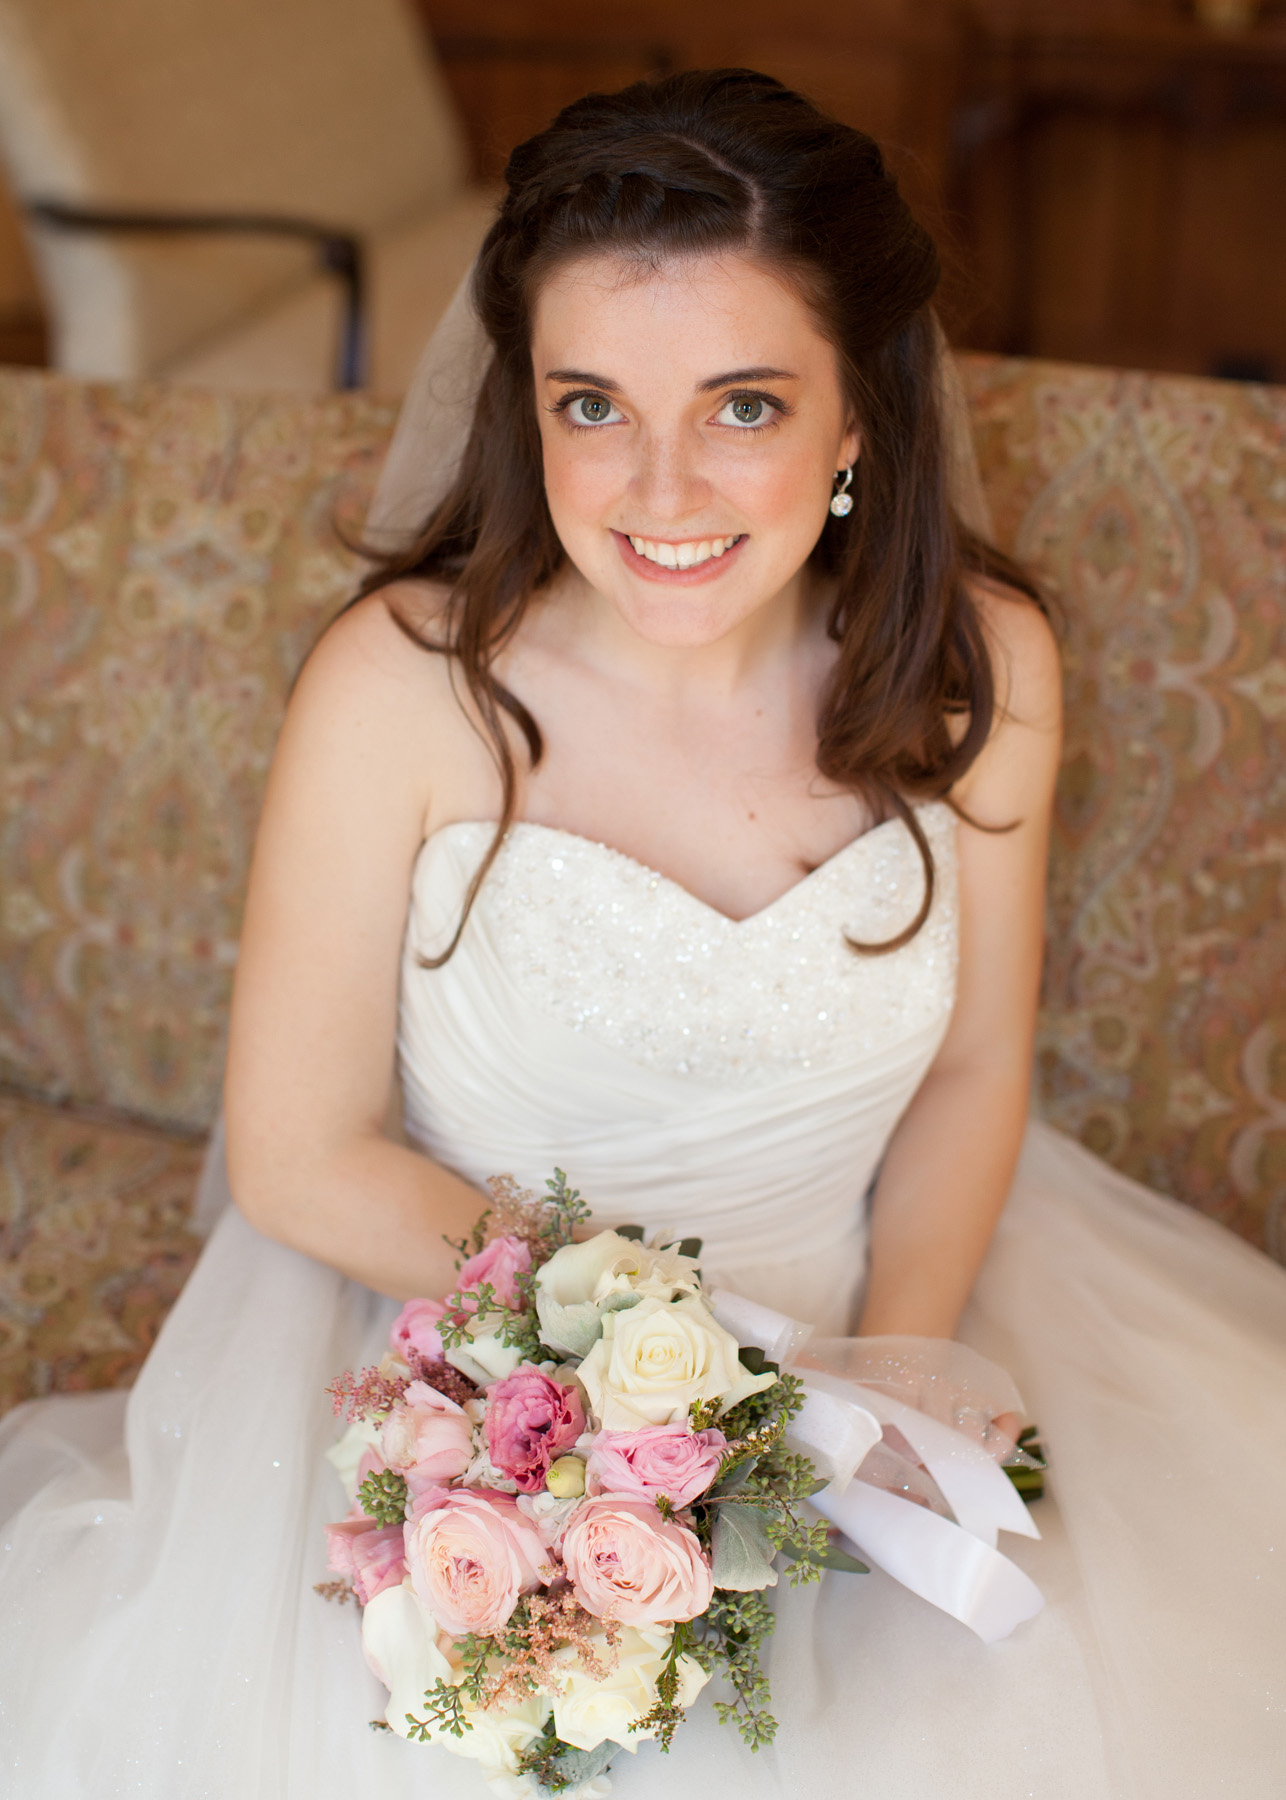 UofM_weddings_hull_melanie_reyes_043